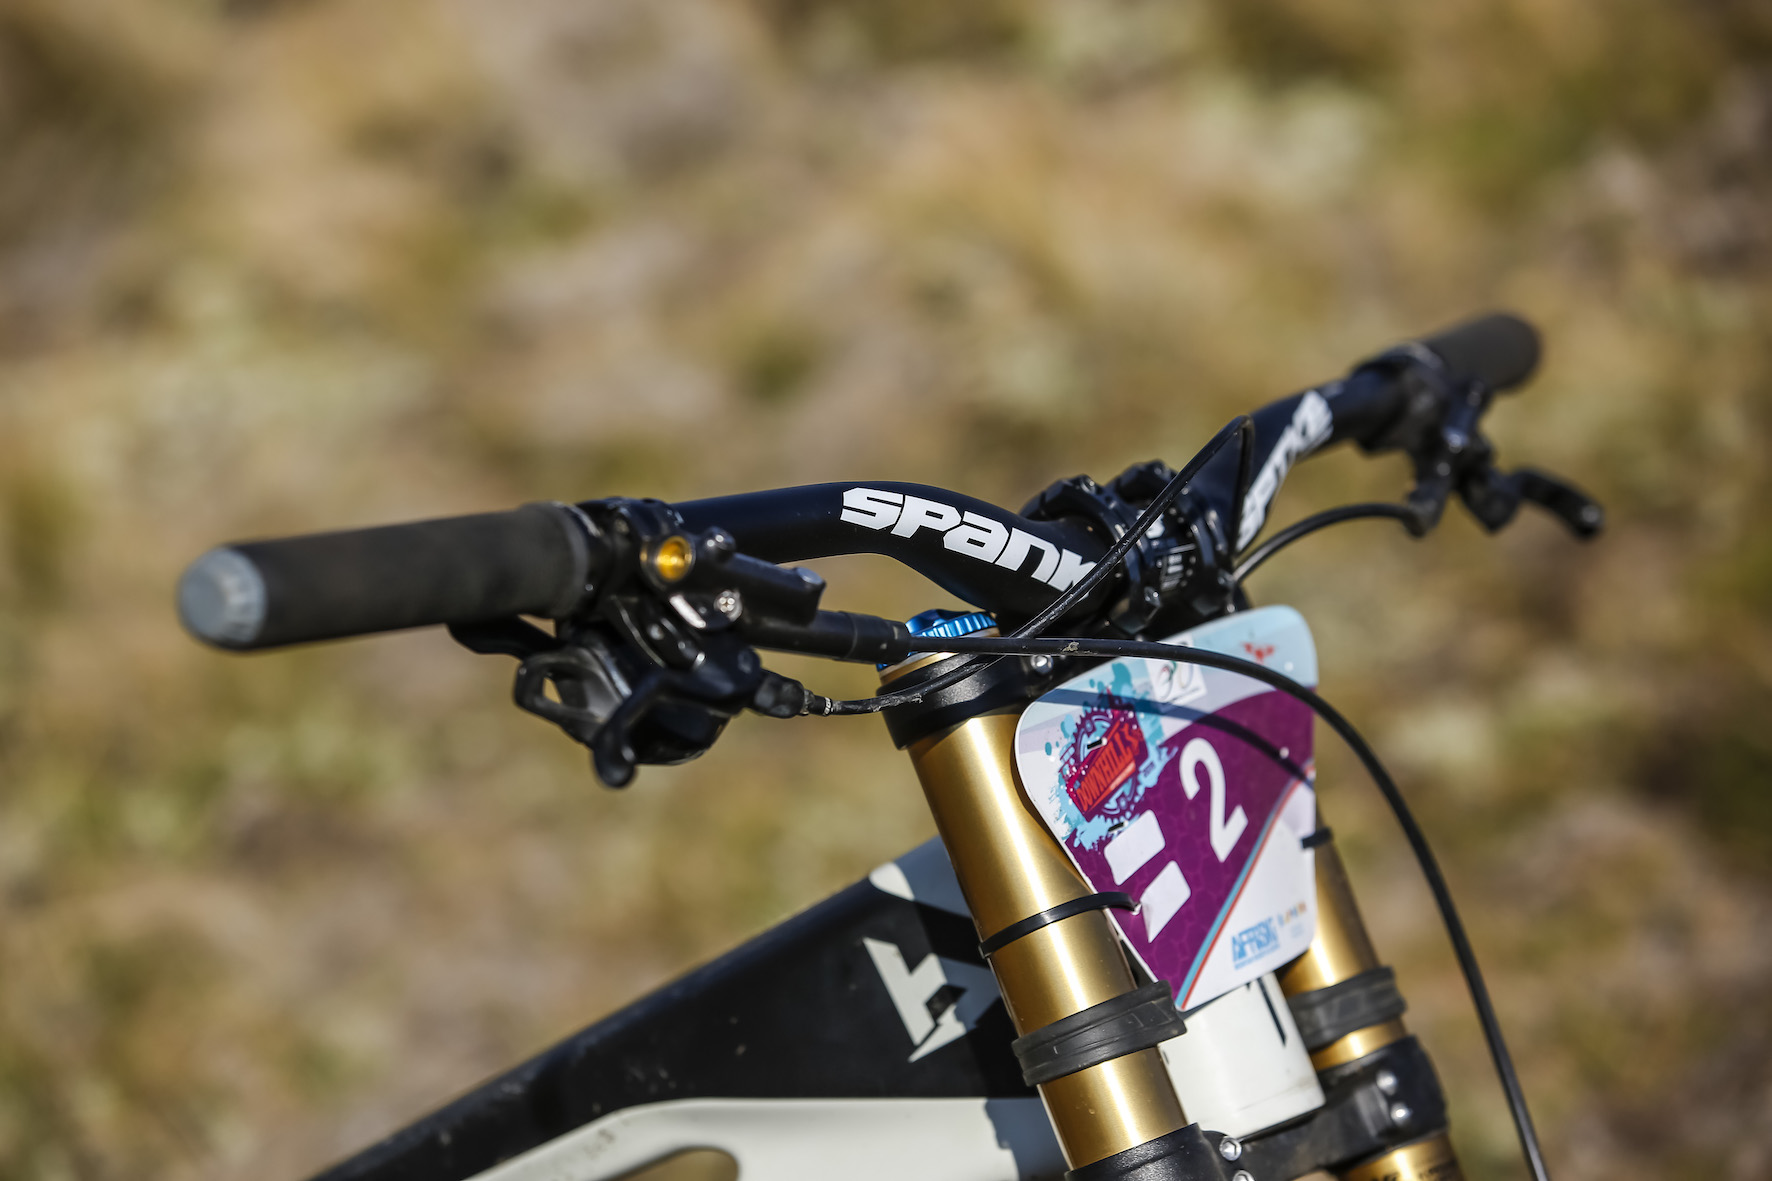 Interview with the 2019 SA Downhill Mountain Bike Champion, Theo Erlangsen